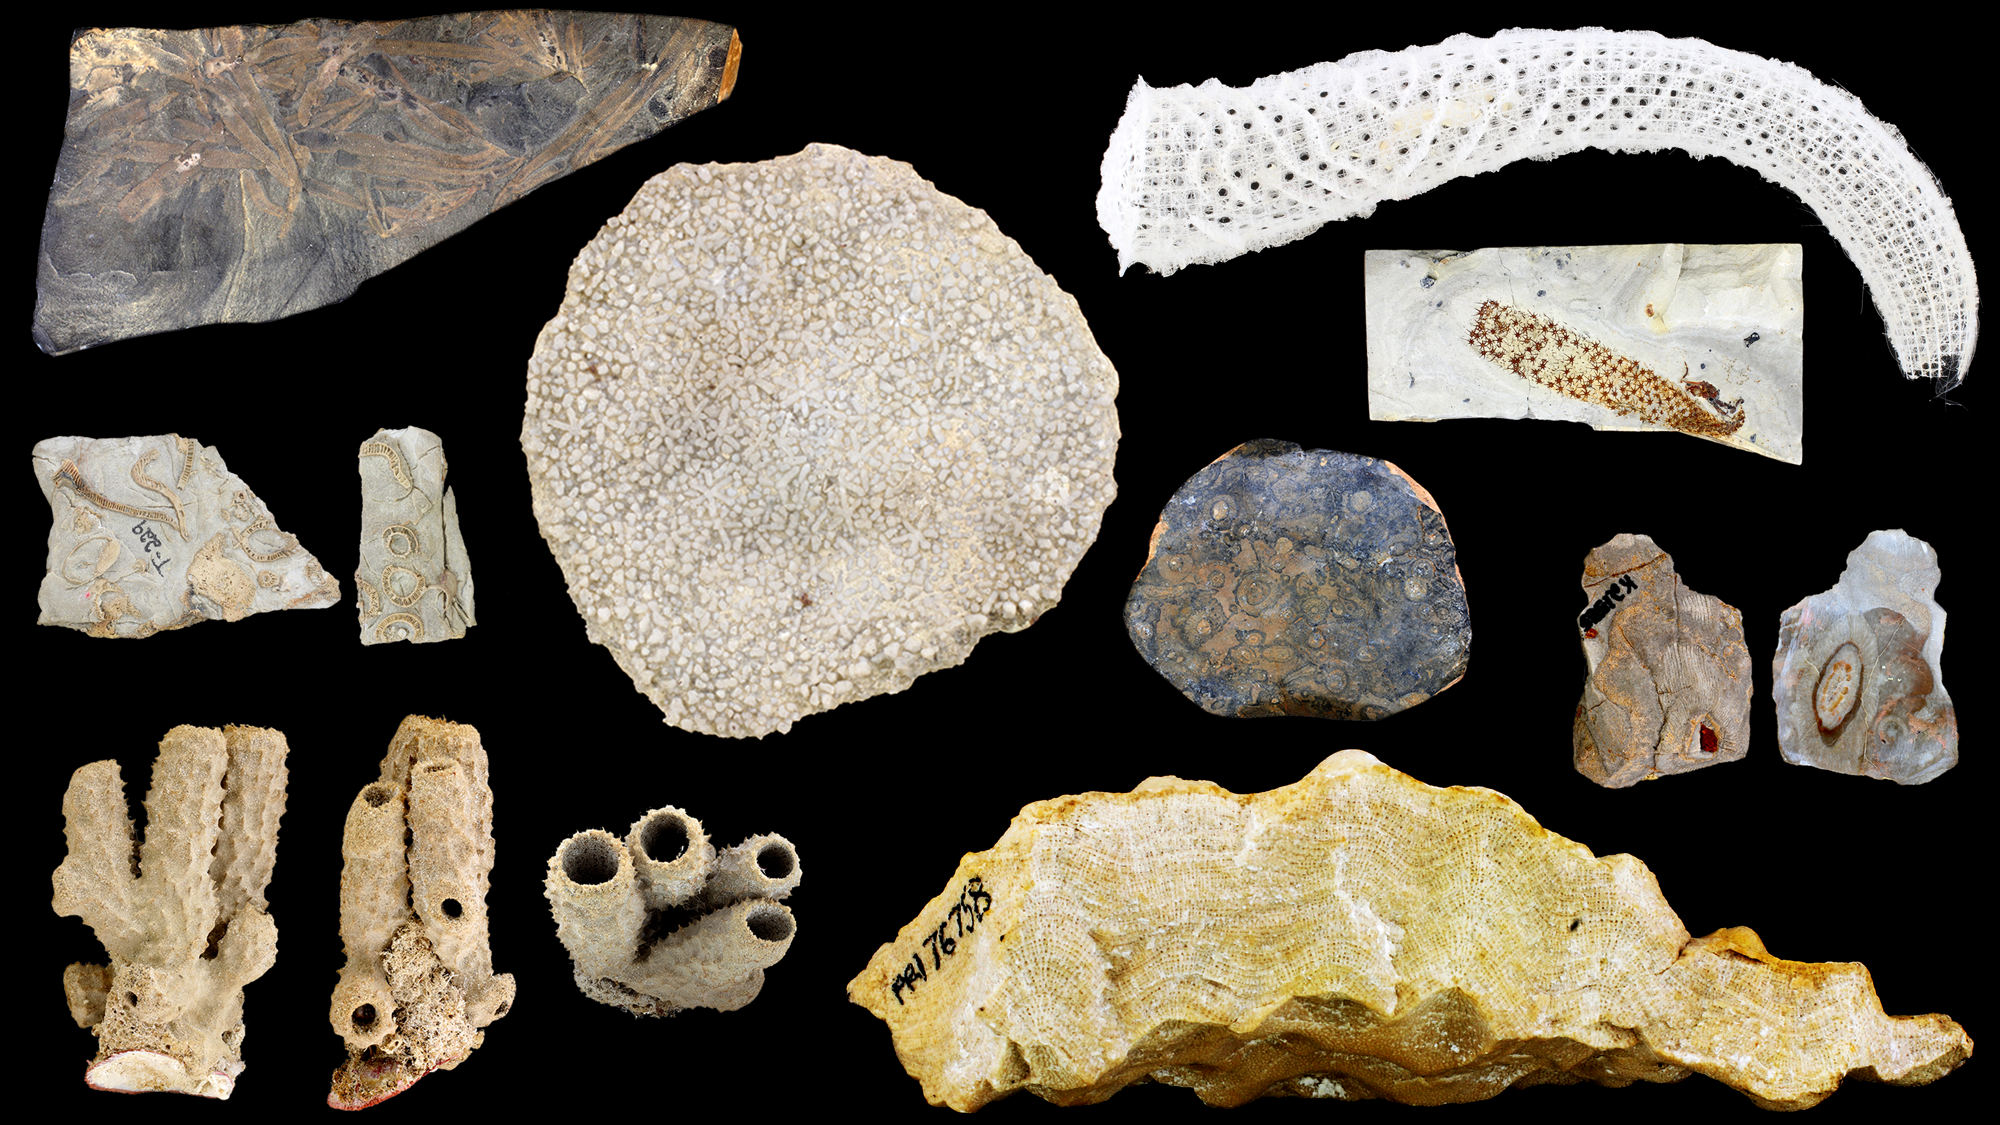 Image of a variety of modern and fossil sponges